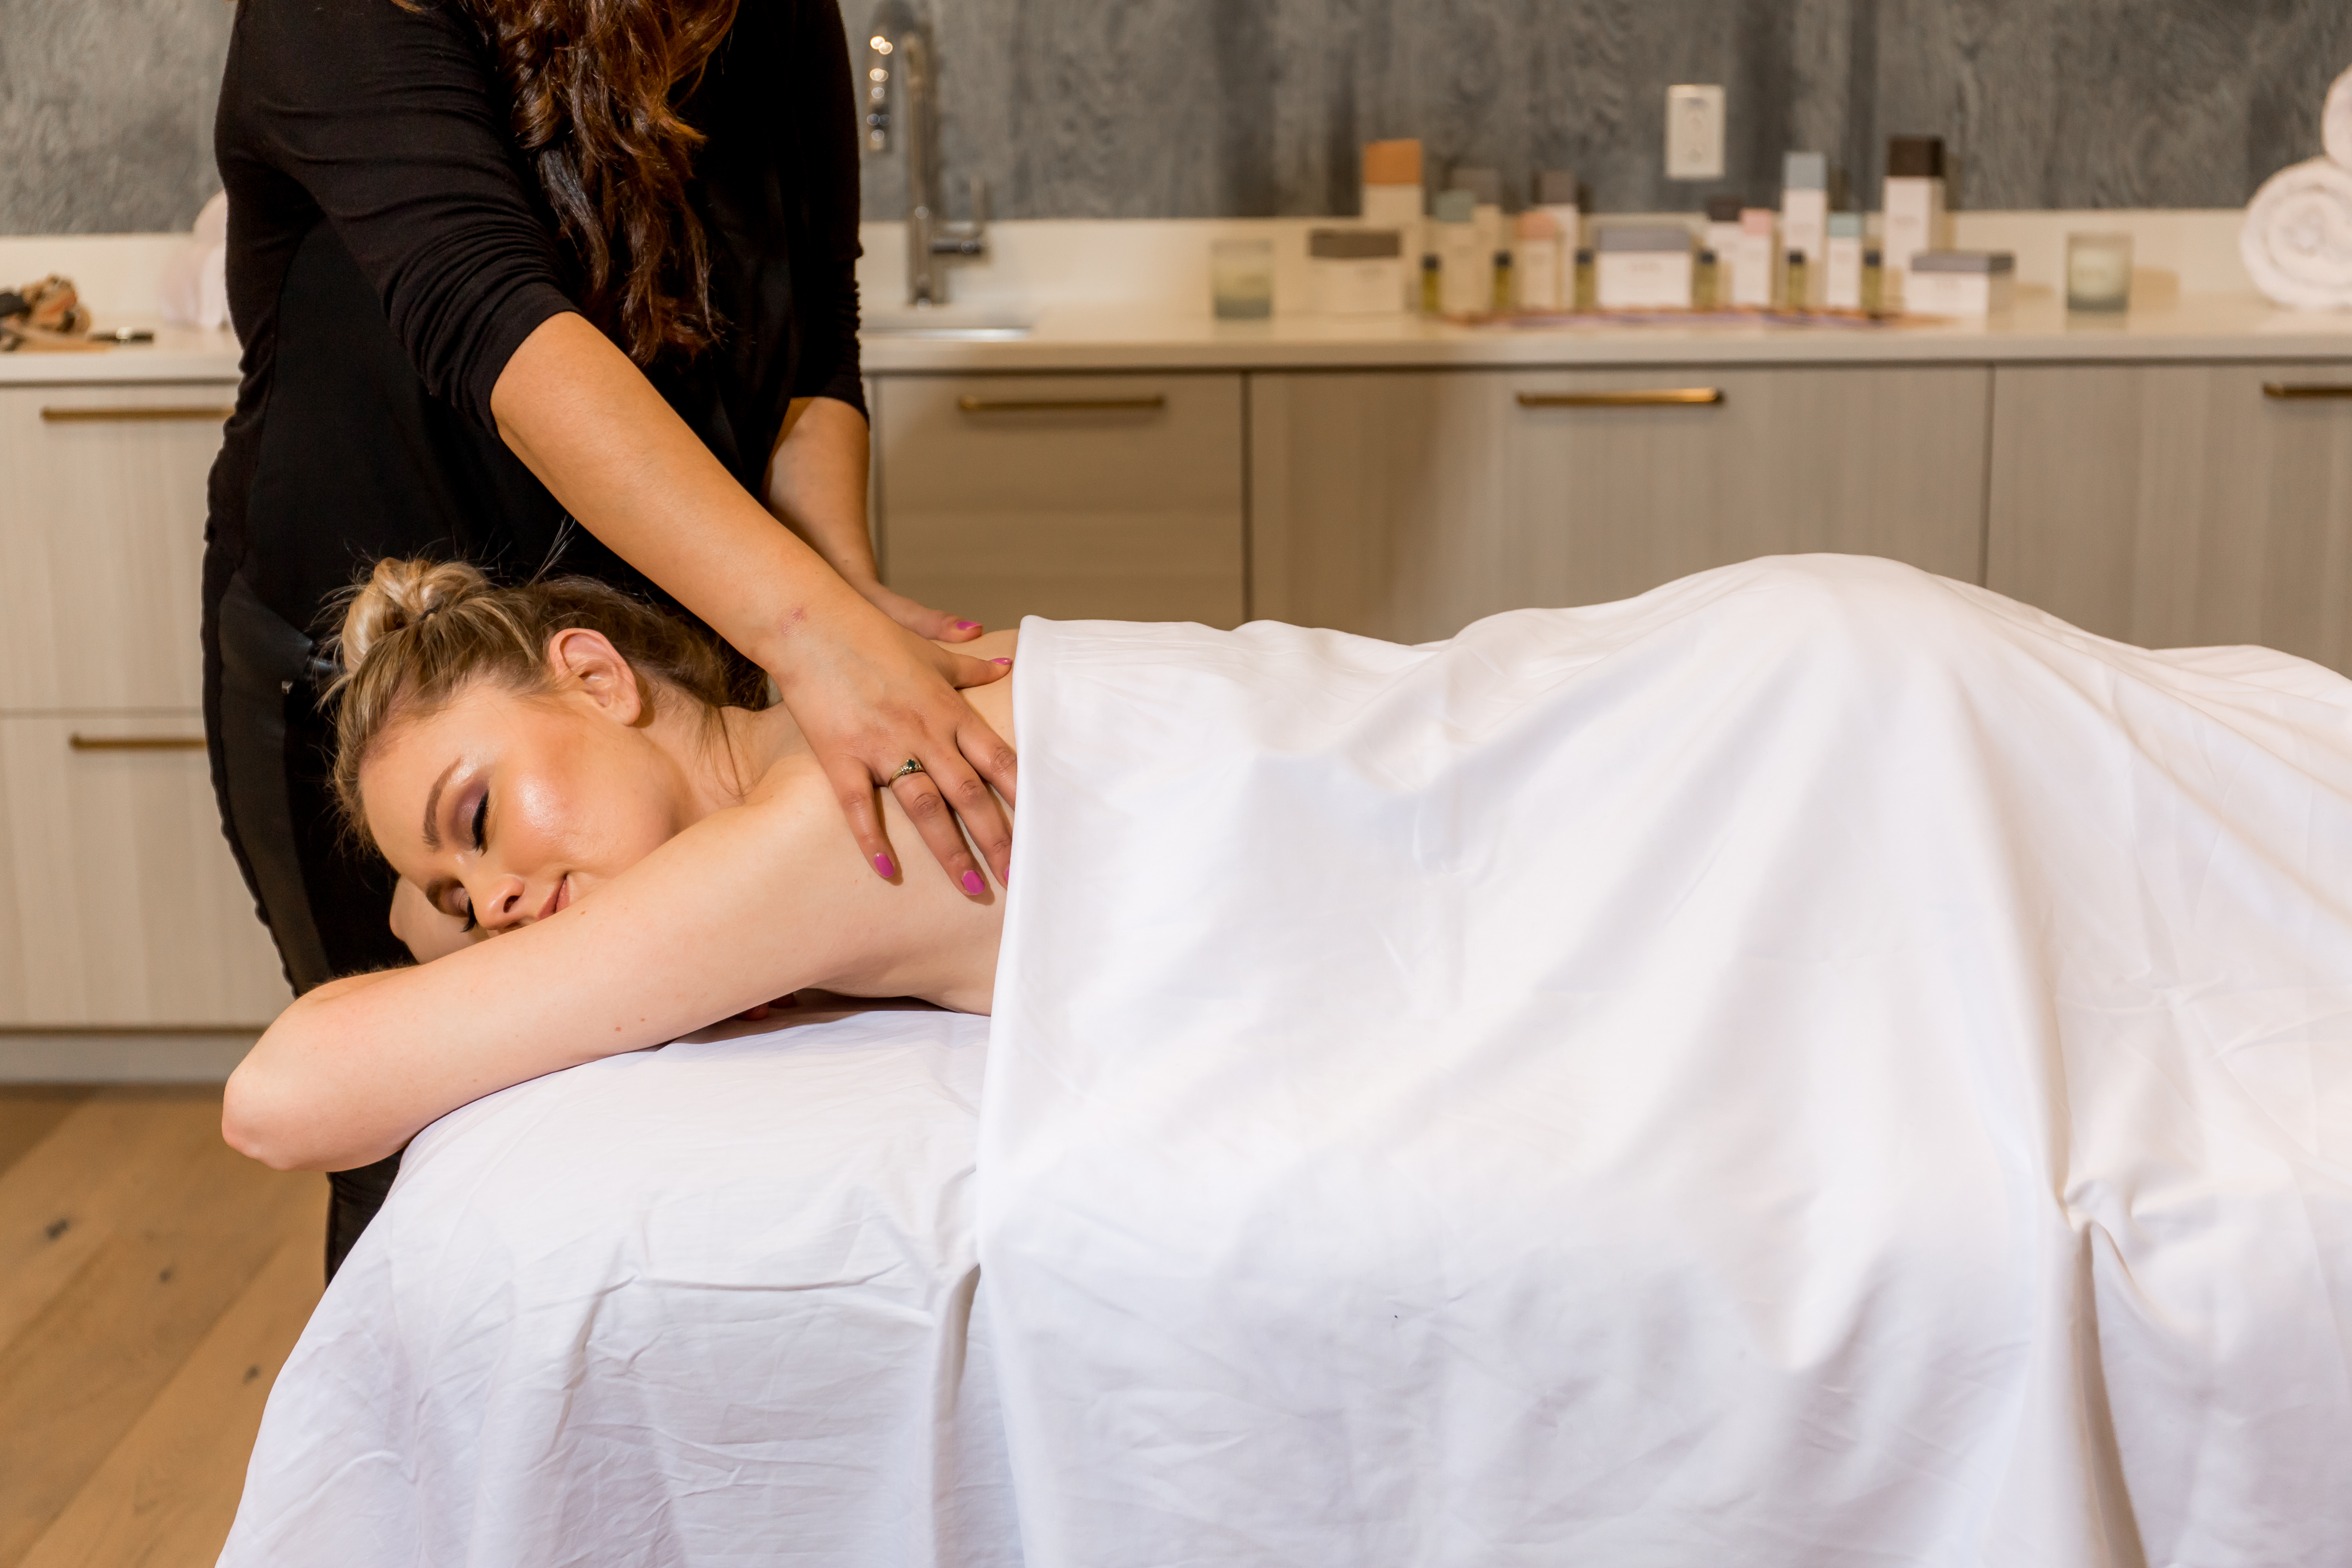 Girl indulging in the spa day a la carte service option with an in-house massage.